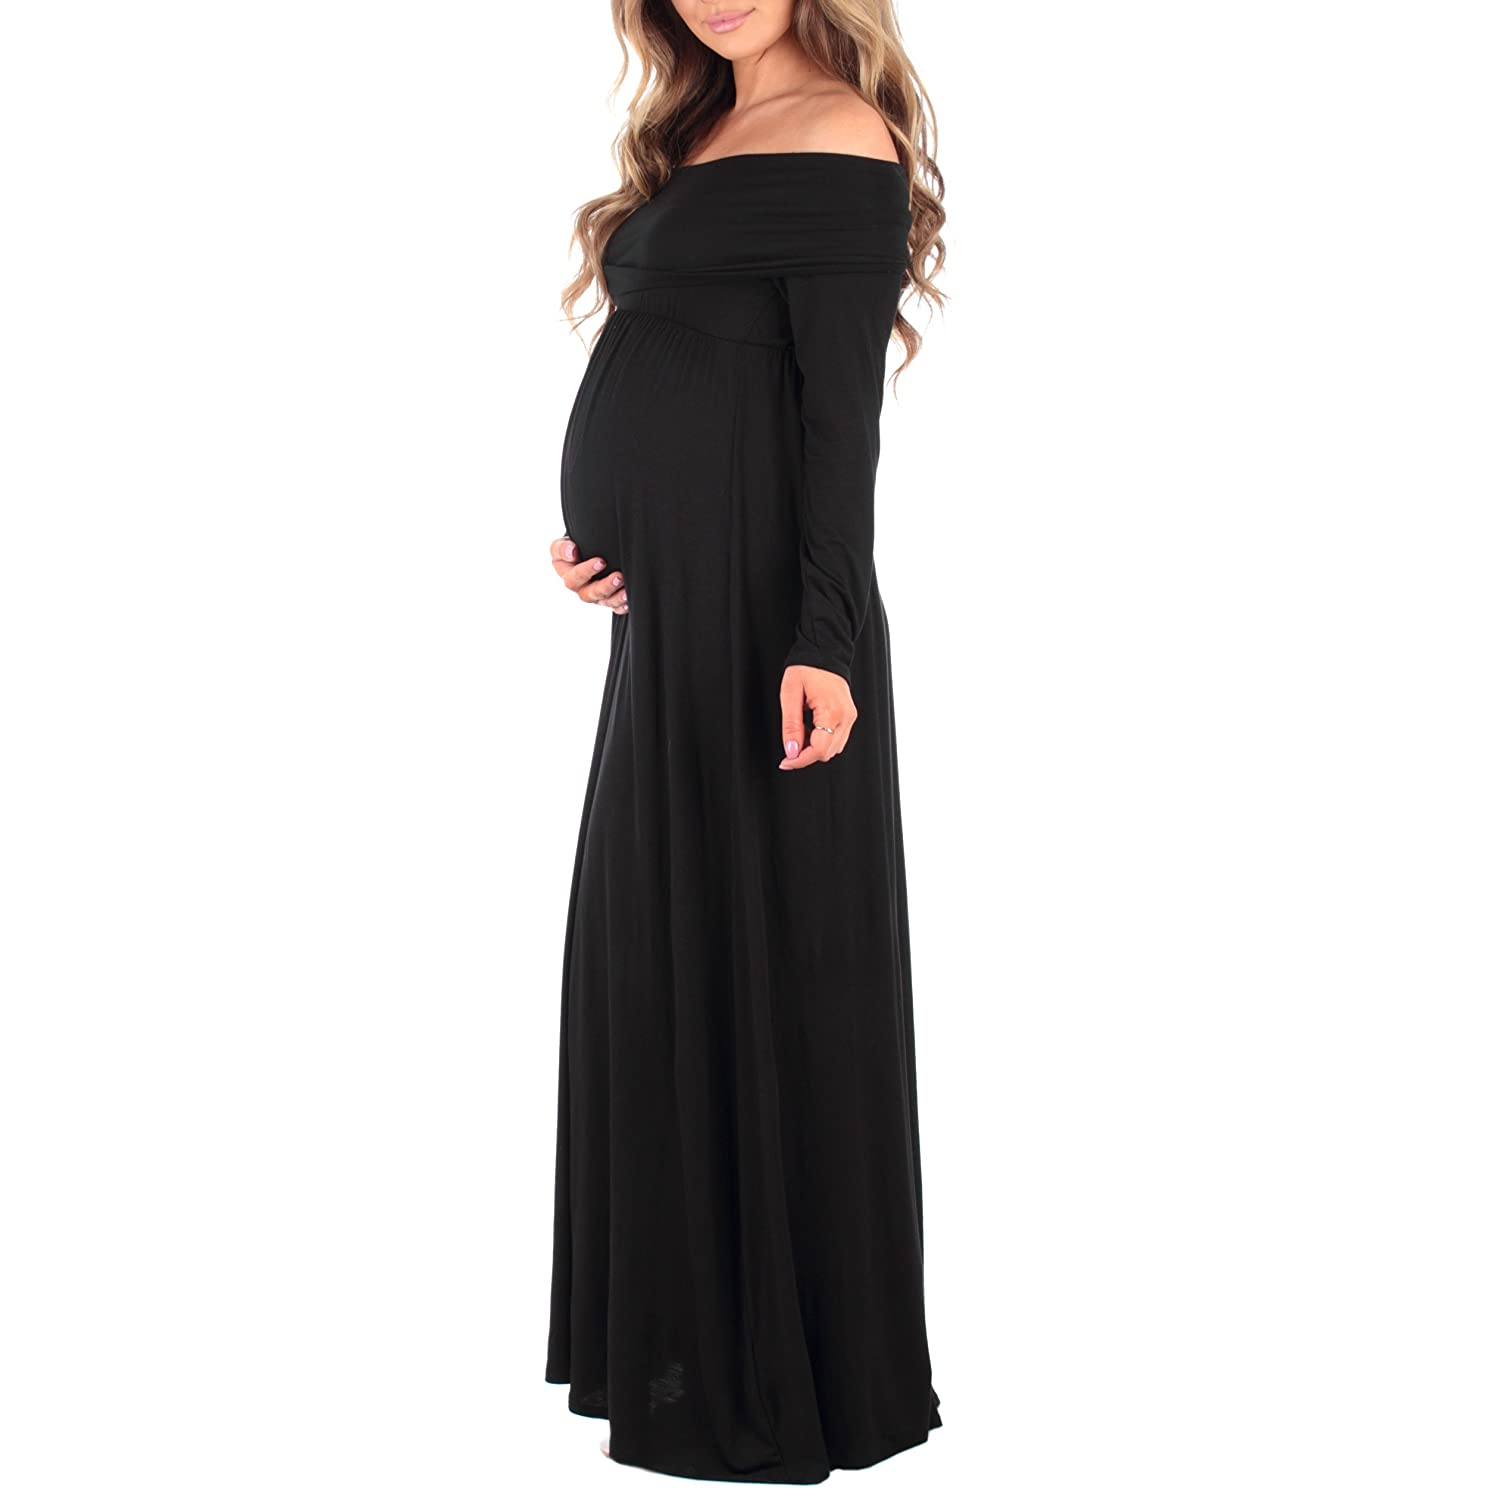 Mother bee womens cowl neck and over the shoulder maternity dress mother bee womens cowl neck and over the shoulder maternity dress by at amazon womens clothing store ombrellifo Choice Image